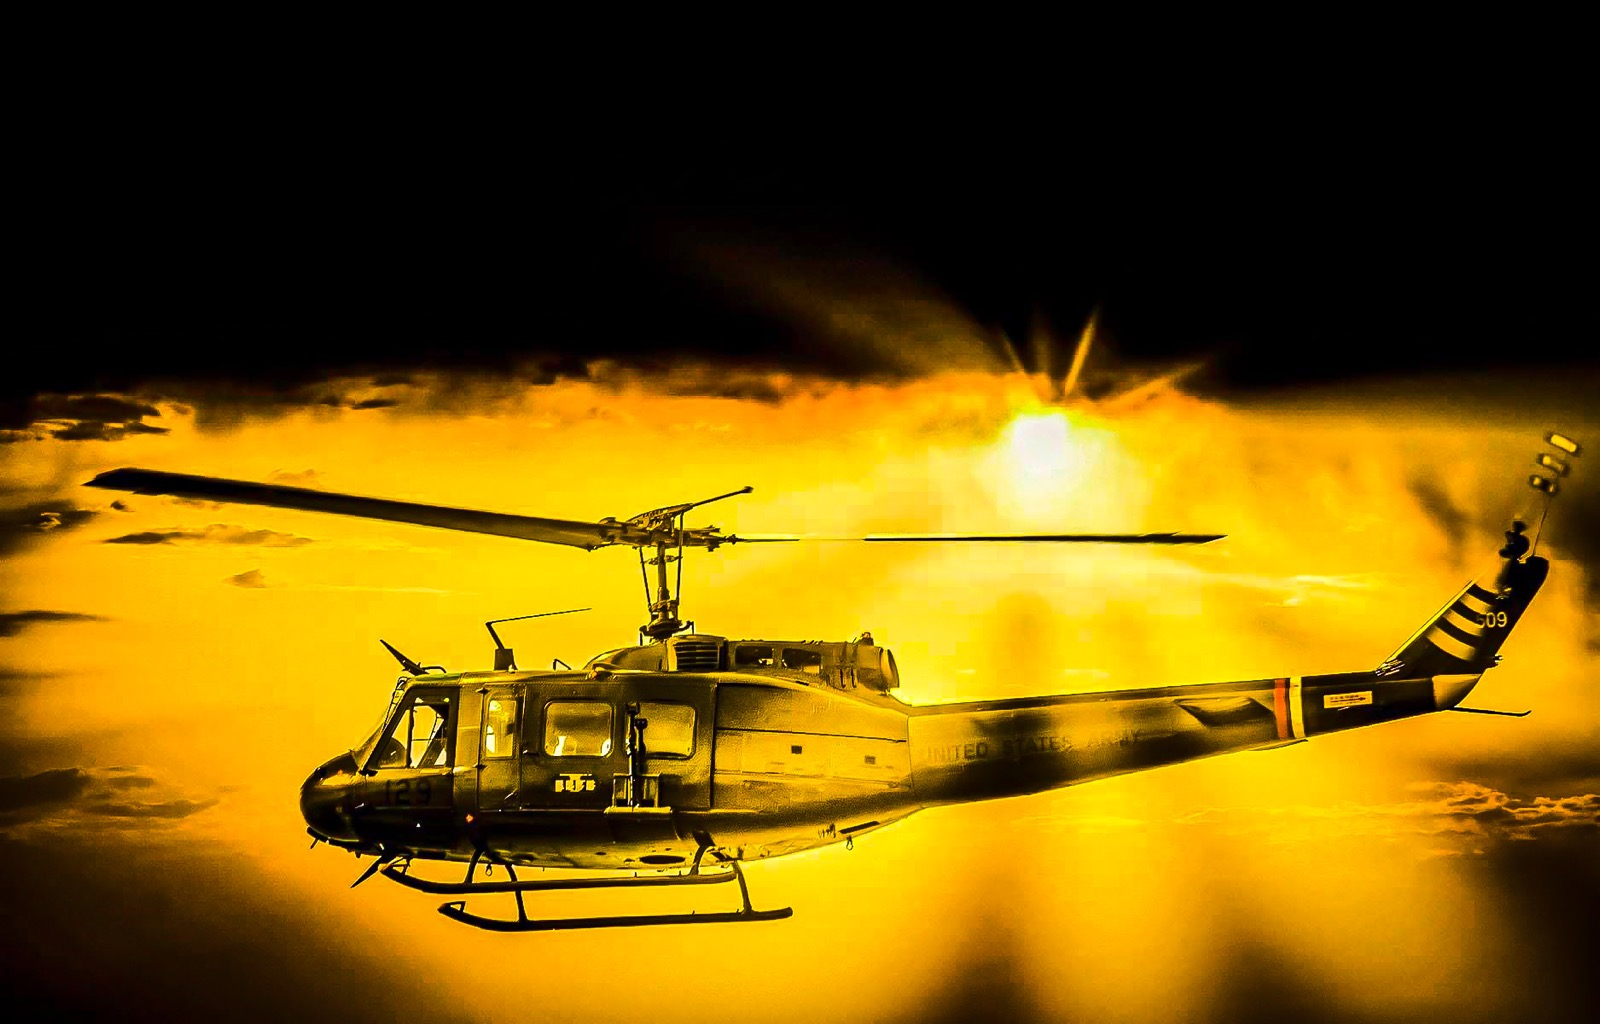 "Huey Helicopter agains the orange glow and sun rays  <a href= https://www.behance.net/cliffnorton "">latest Portfolio updates projects CliffNorton</a>